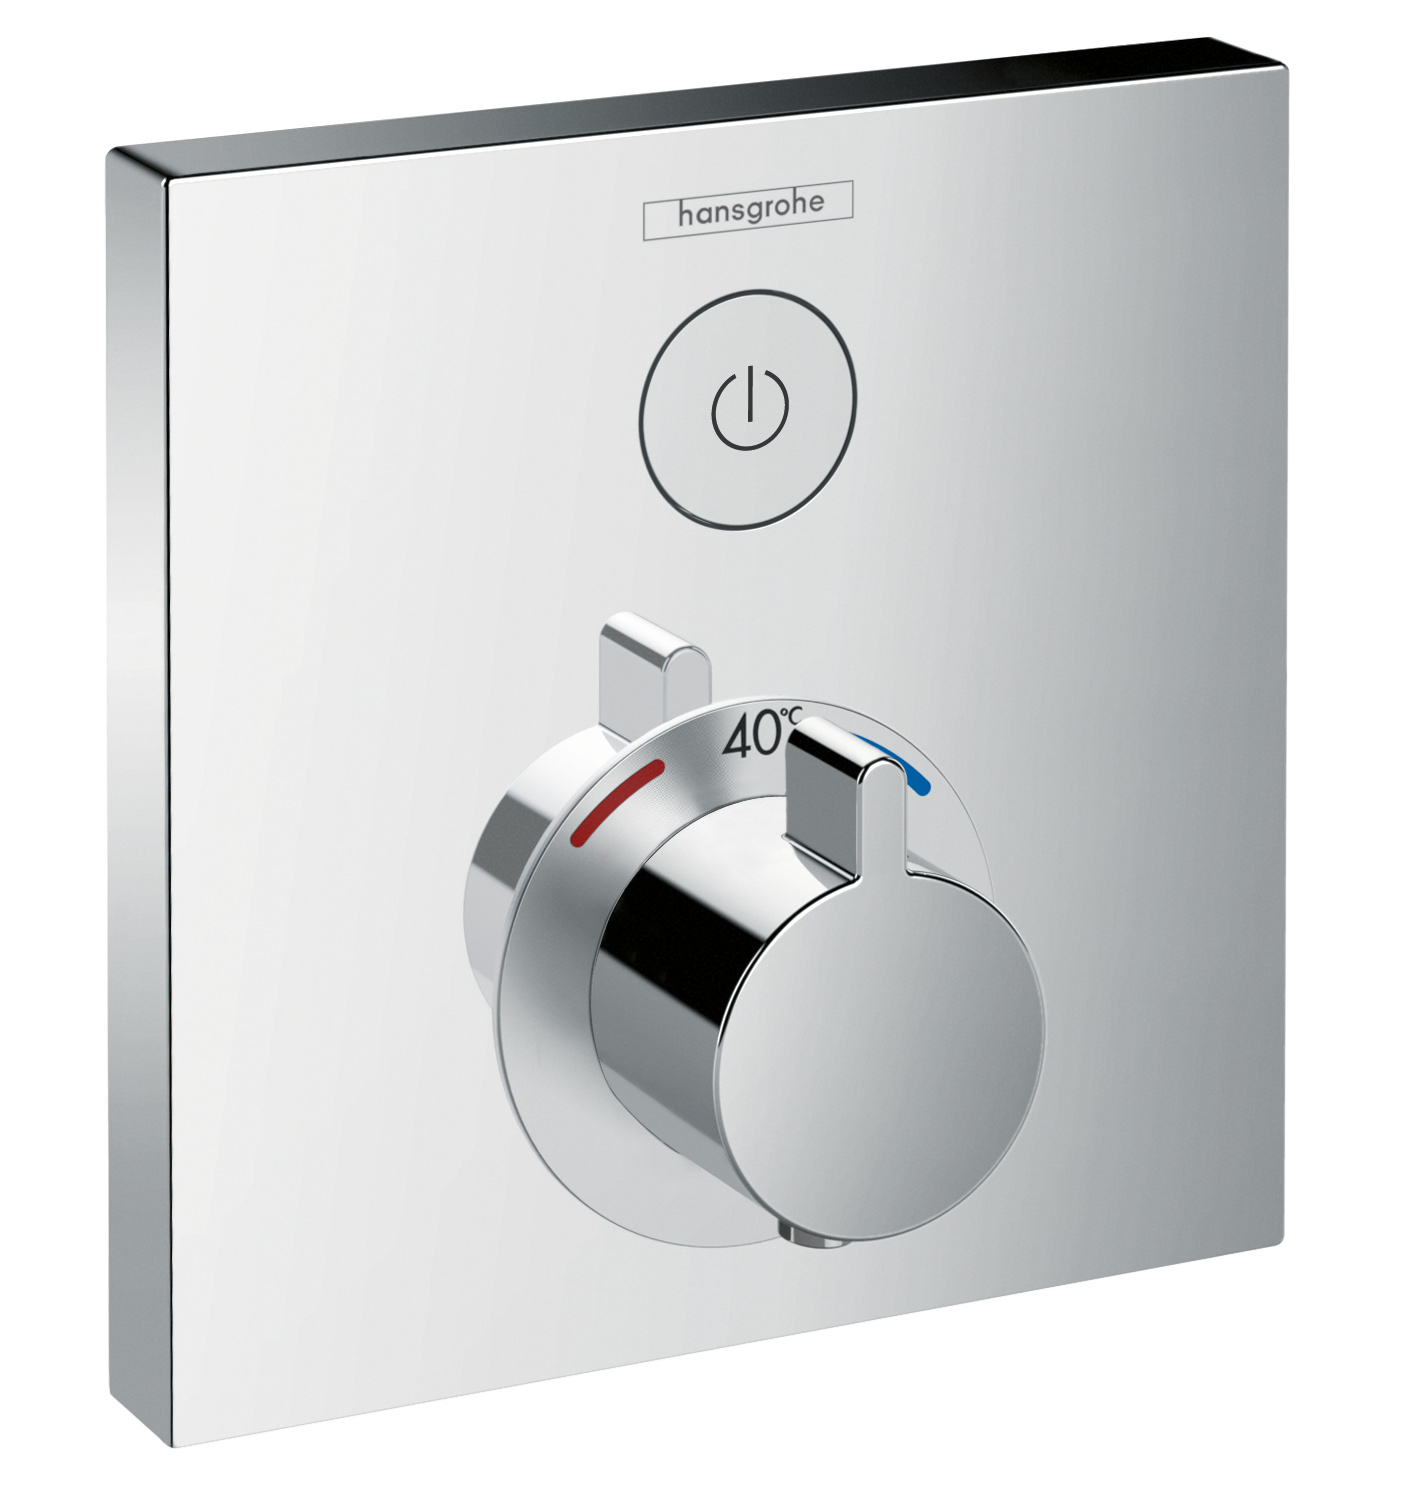 Hansgrohe_EcostatSelect_ConcealedThermostat